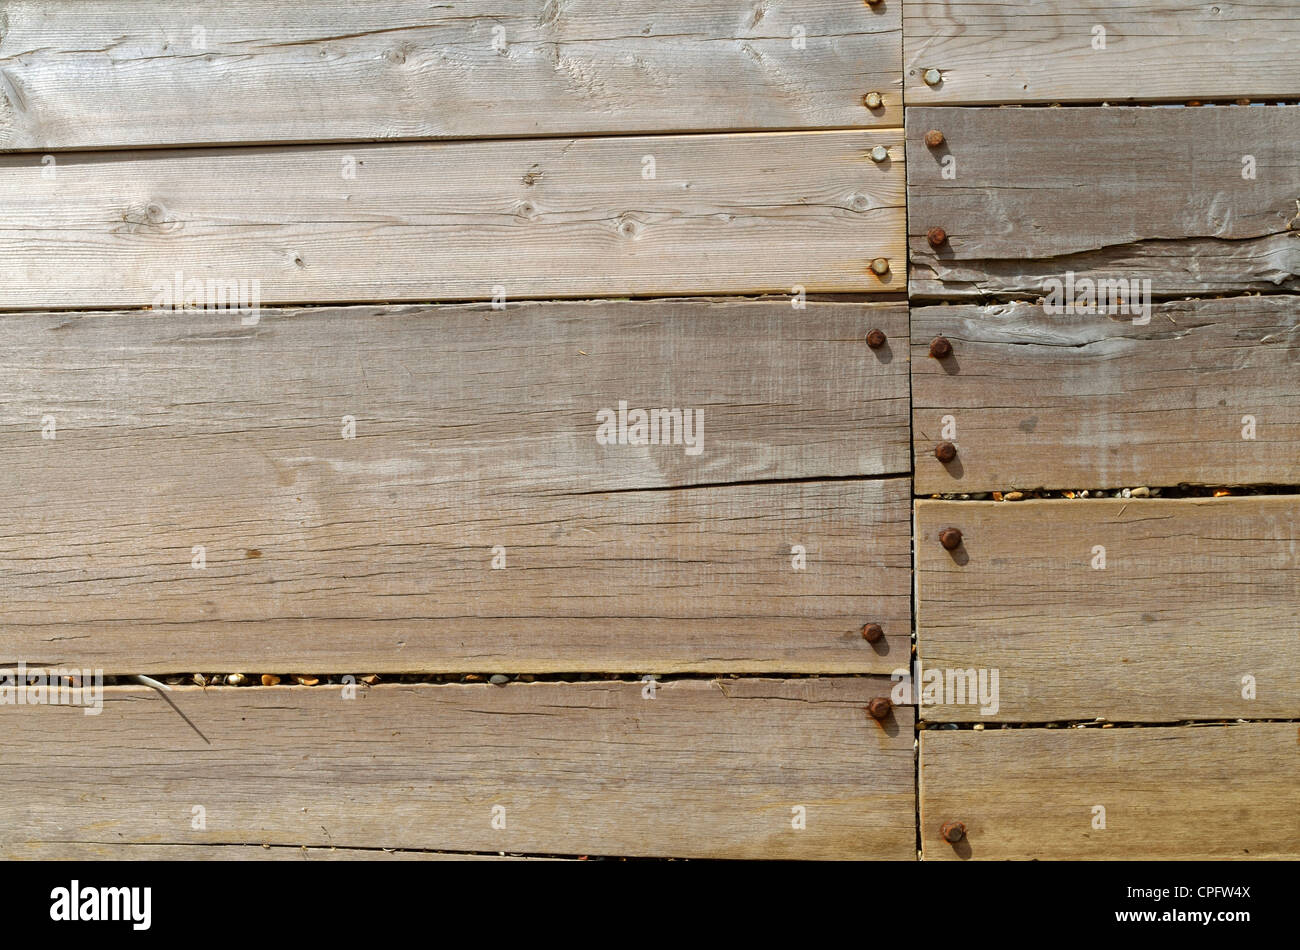 Wooden barrier dividing areas along the shore Stock Photo